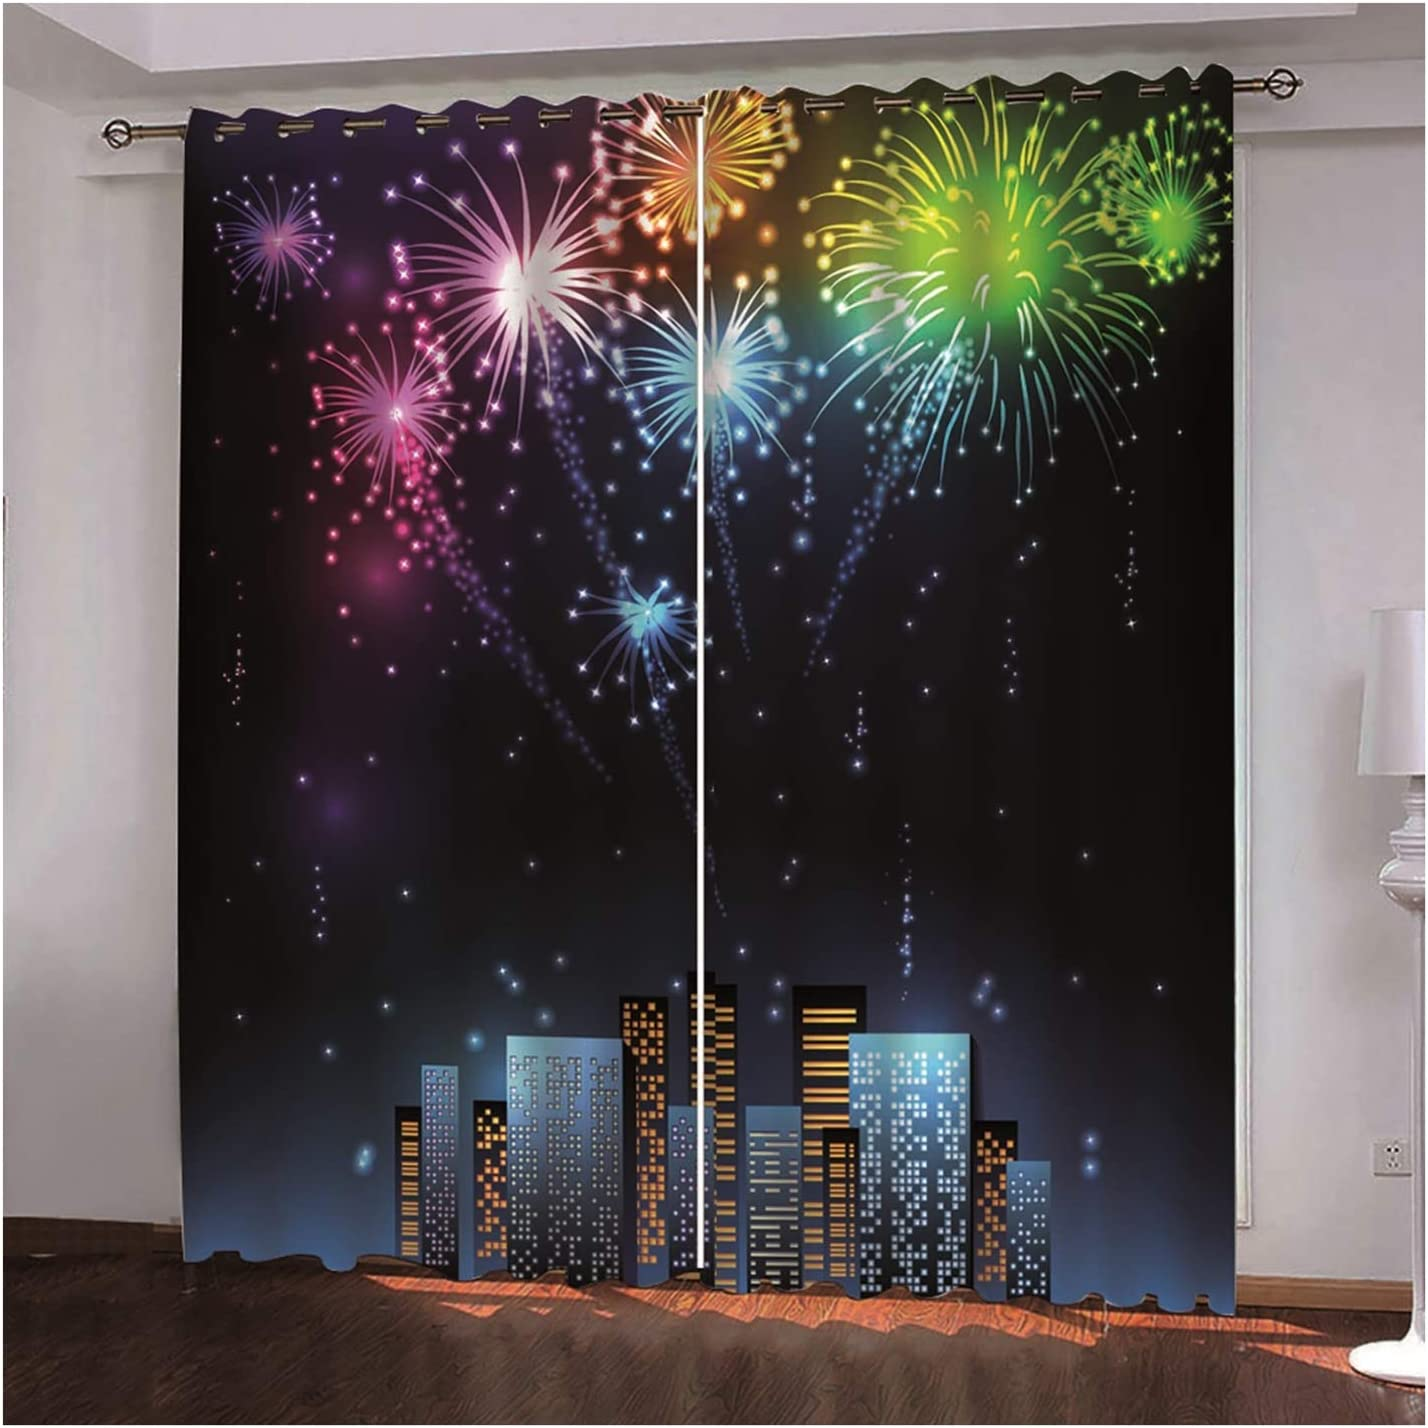 Daesar 3D Limited time trial price Christmas shopping Window Curtains Curtain for Bedroom 2 Panel